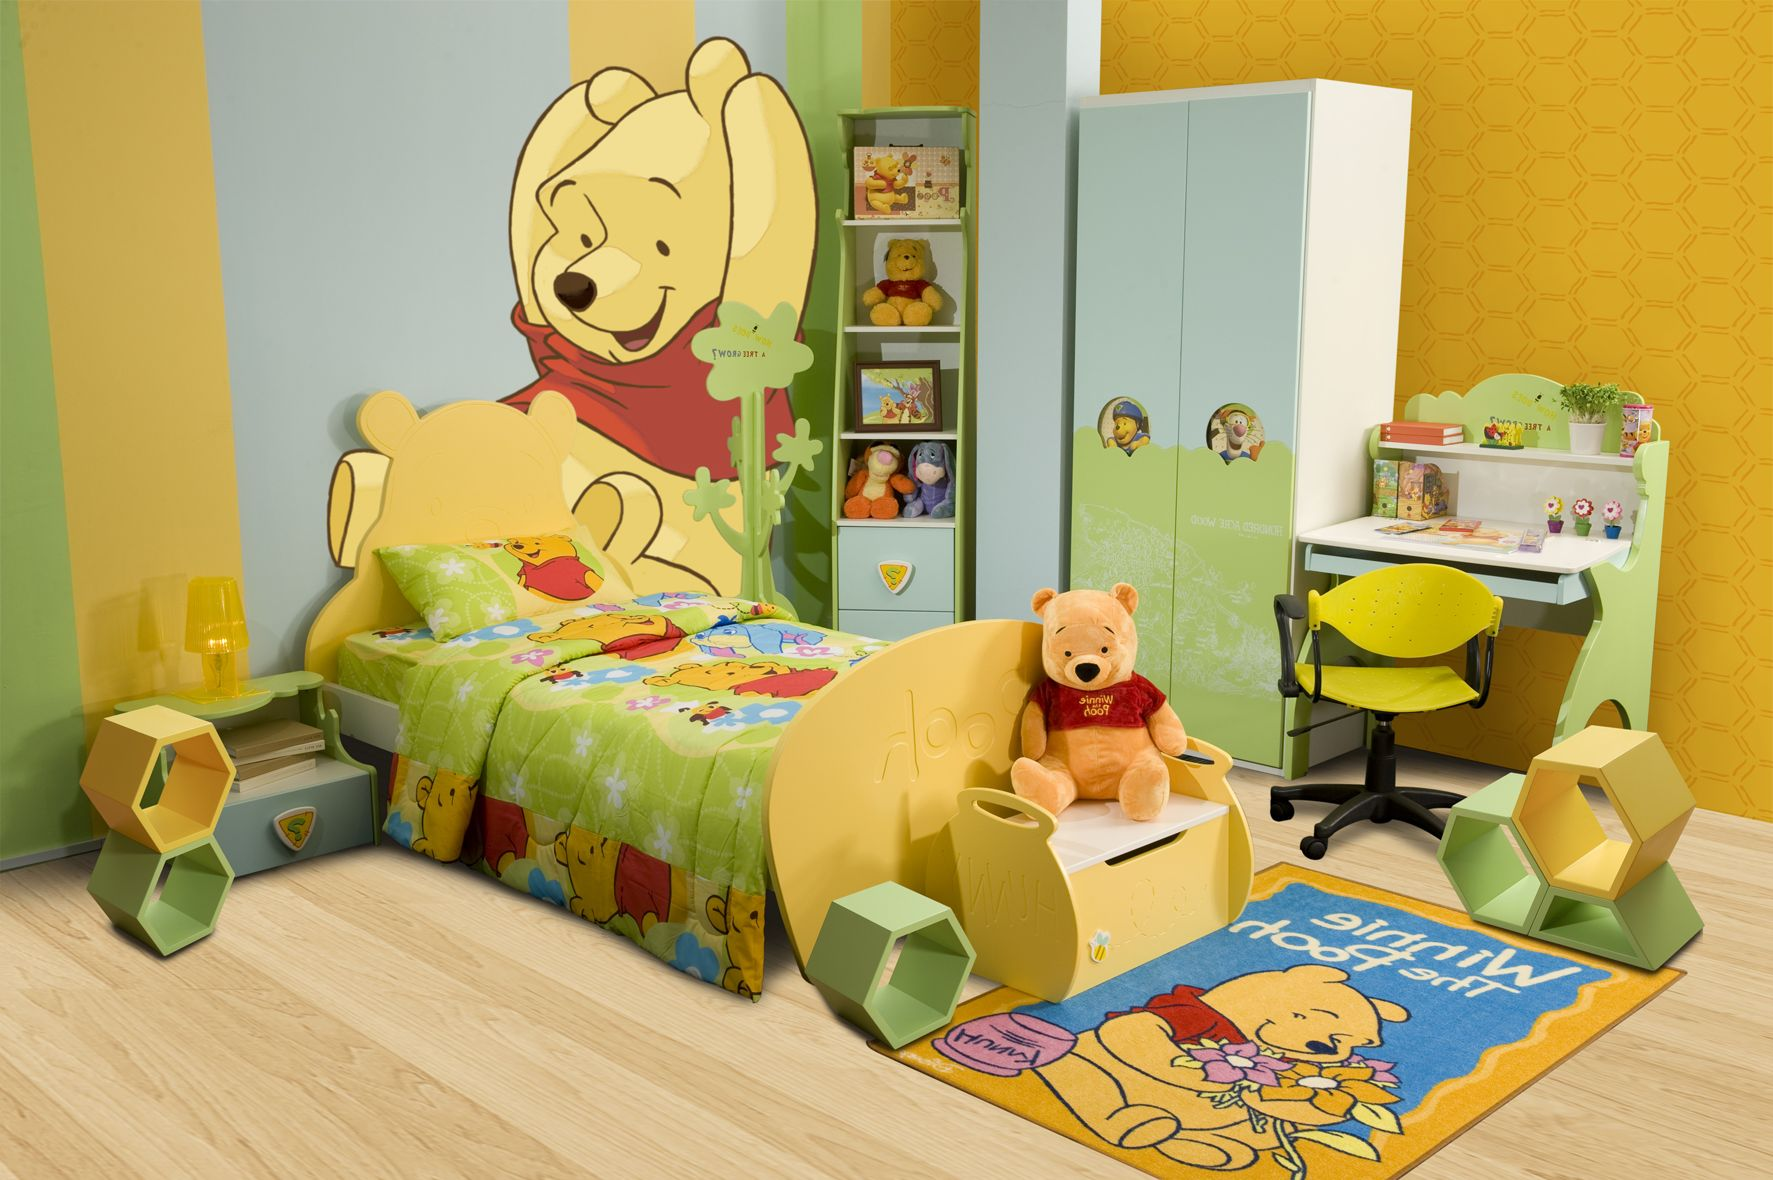 Creative Kids Bedrooms Winnie The Pooh And Friends Inspired Bedroom Decor